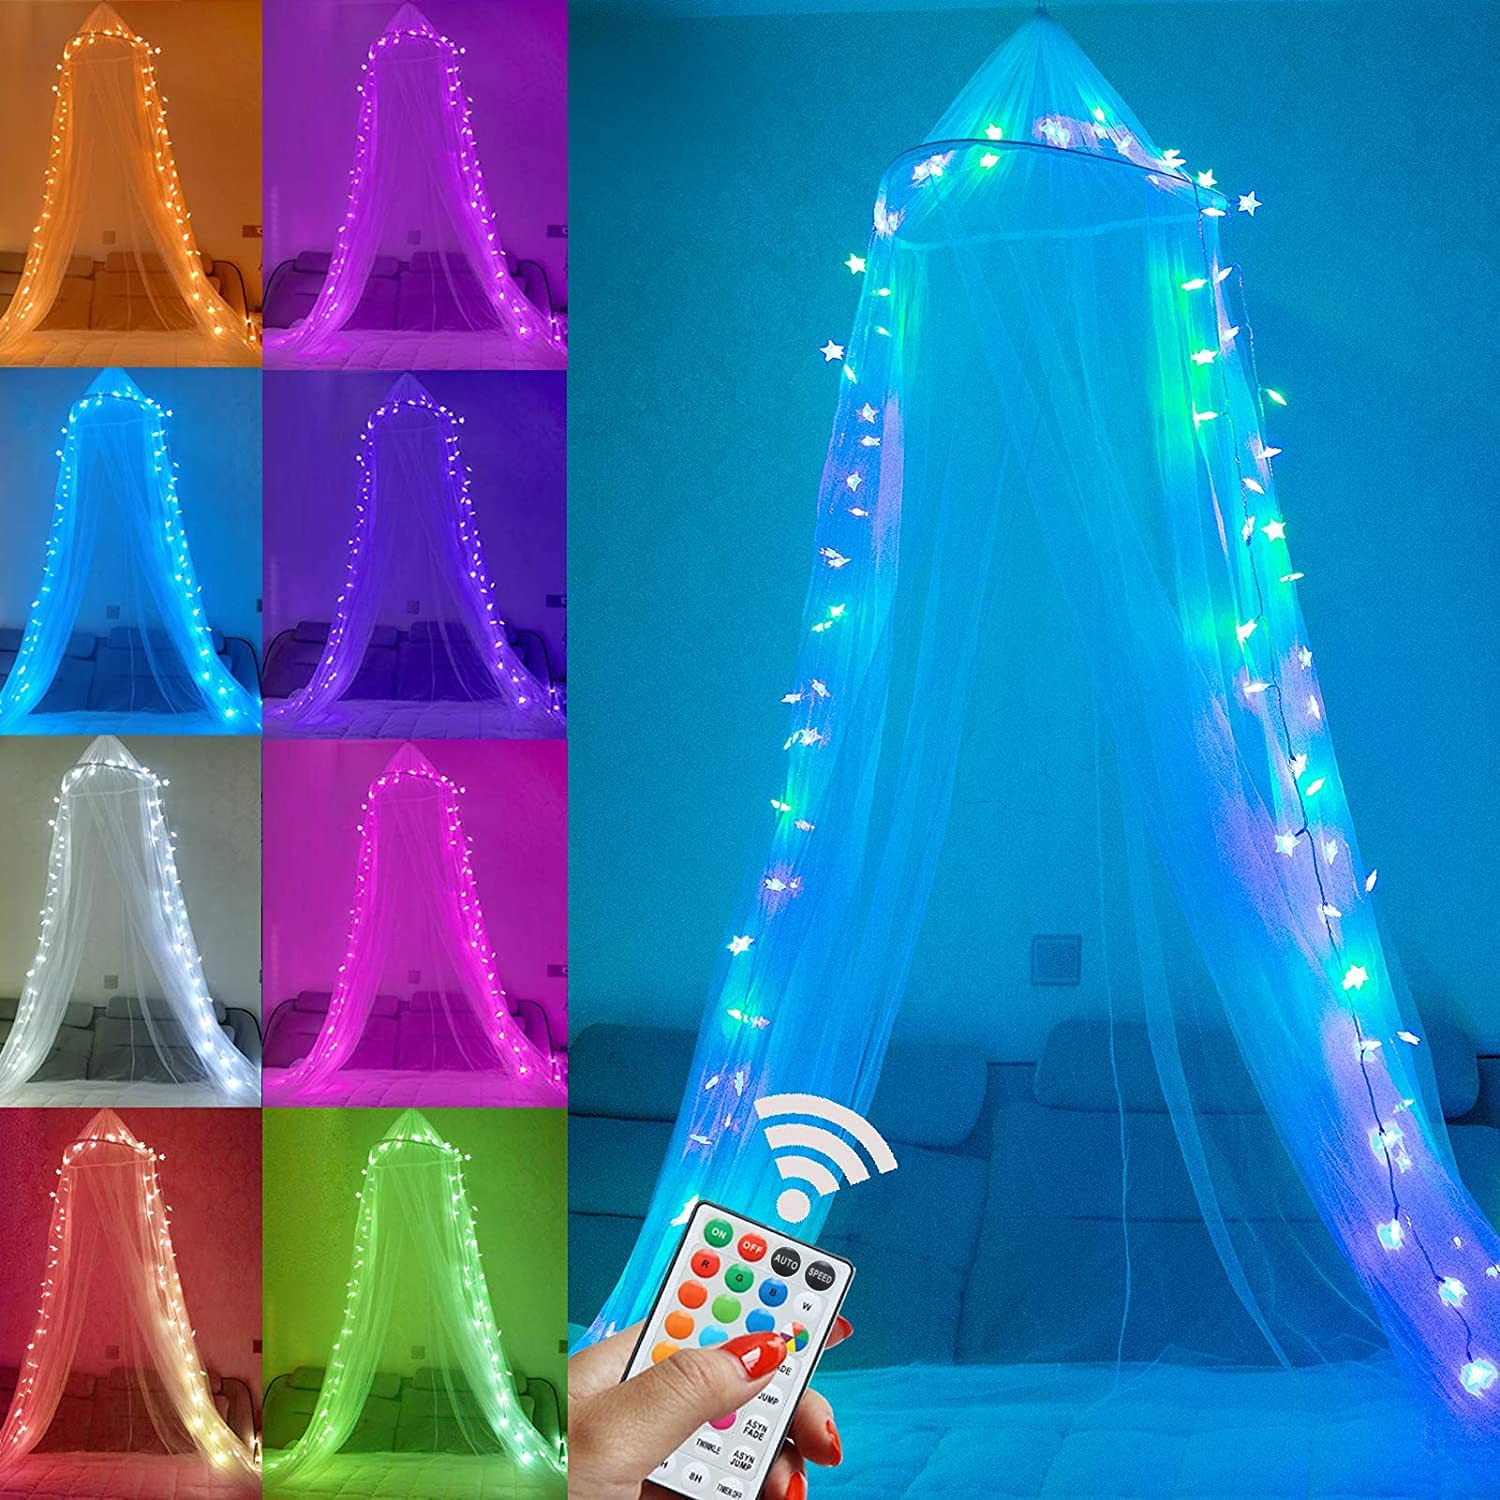 Bed Canopy 2021 model with 18 Colors Control Star 70% OFF Outlet Lights Remote